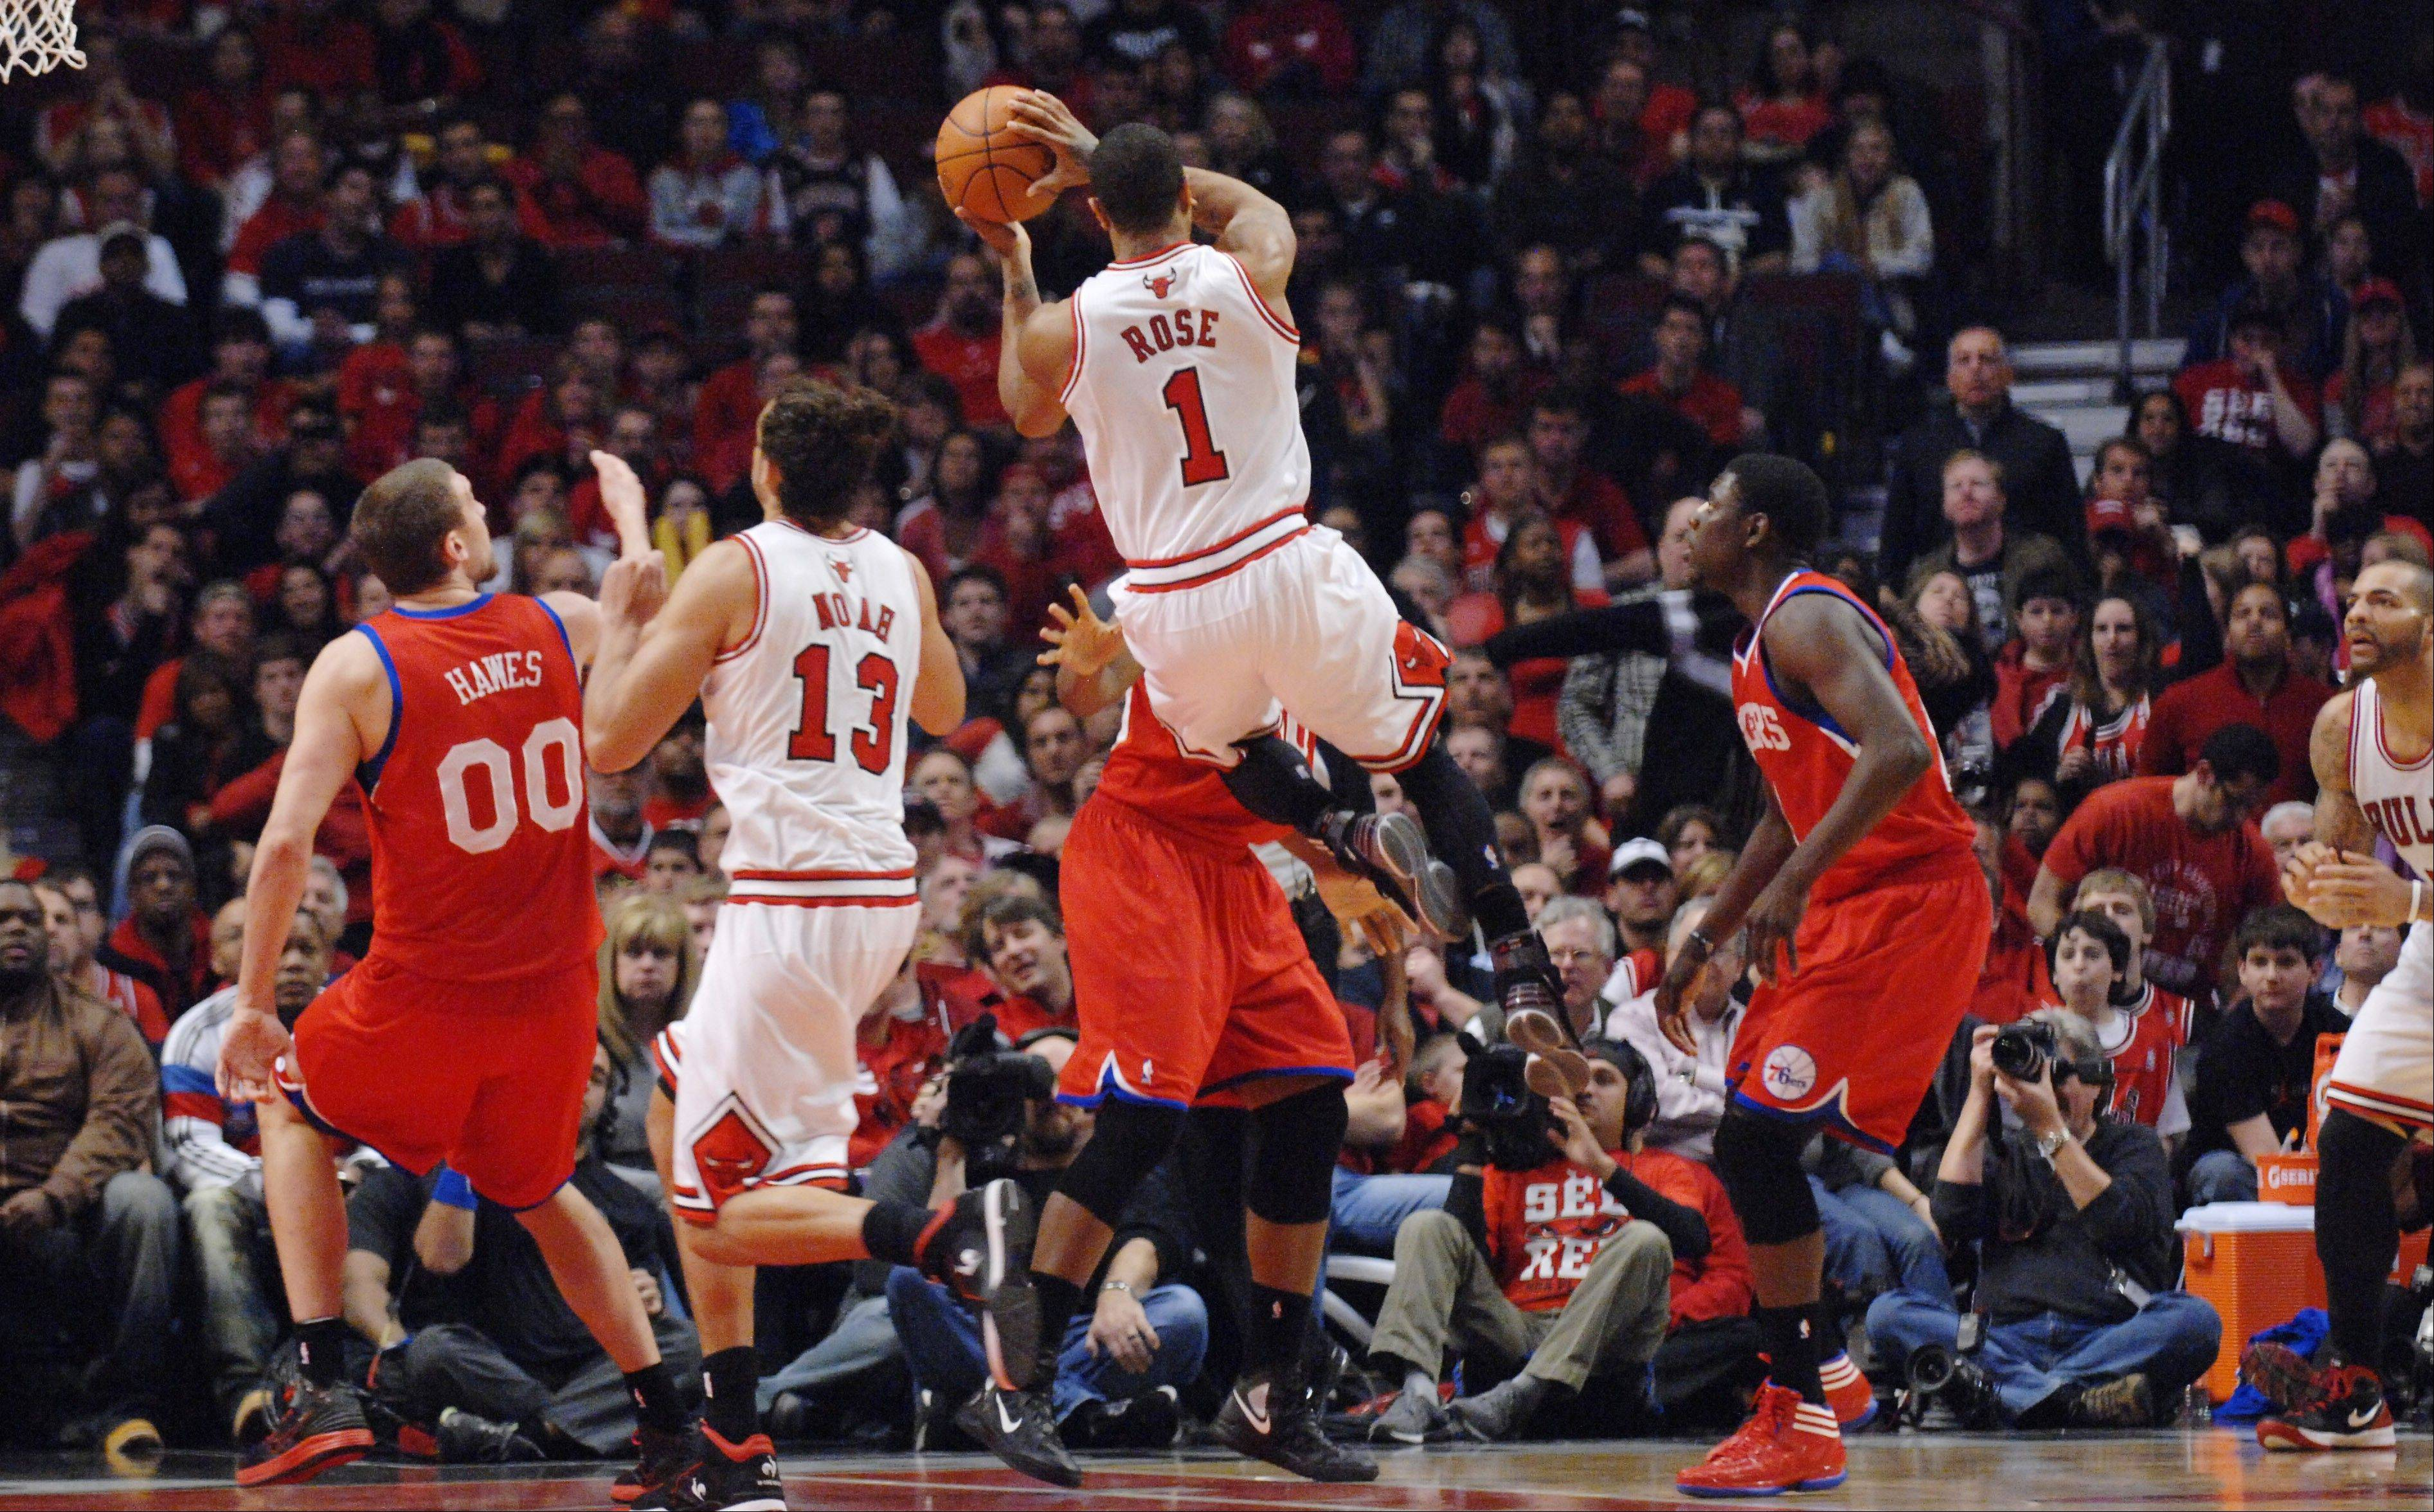 Derrick Rose goes up for shot as he injures the ACL in his left leg Saturday at the United Center.